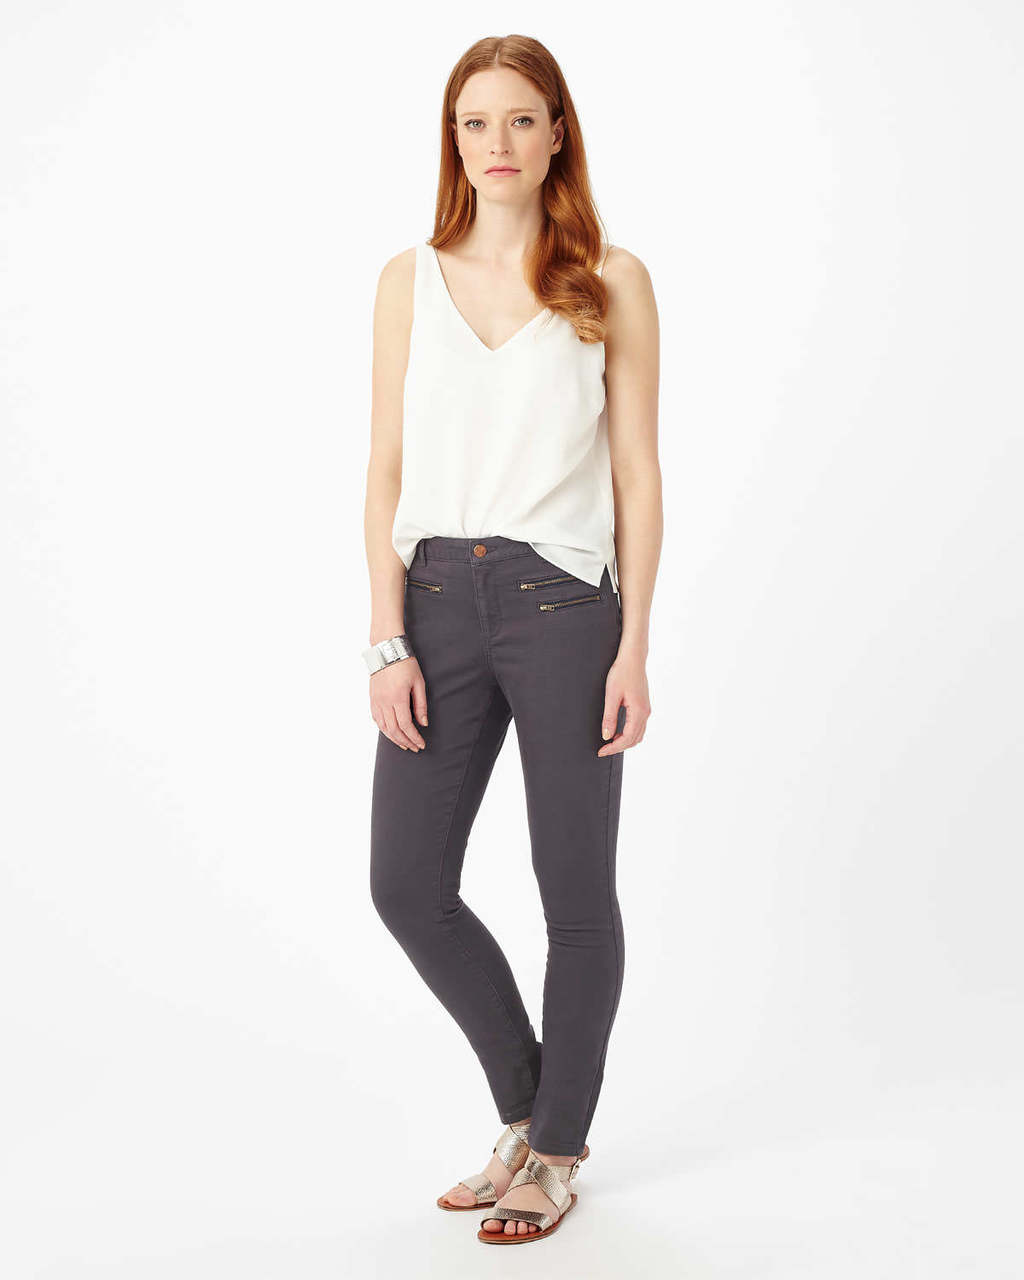 Victoria Triple Zip Jean - style: skinny leg; length: standard; pocket detail: traditional 5 pocket; waist: mid/regular rise; predominant colour: charcoal; occasions: casual; fibres: cotton - stretch; texture group: denim; pattern type: fabric; pattern: patterned/print; season: s/s 2016; wardrobe: highlight